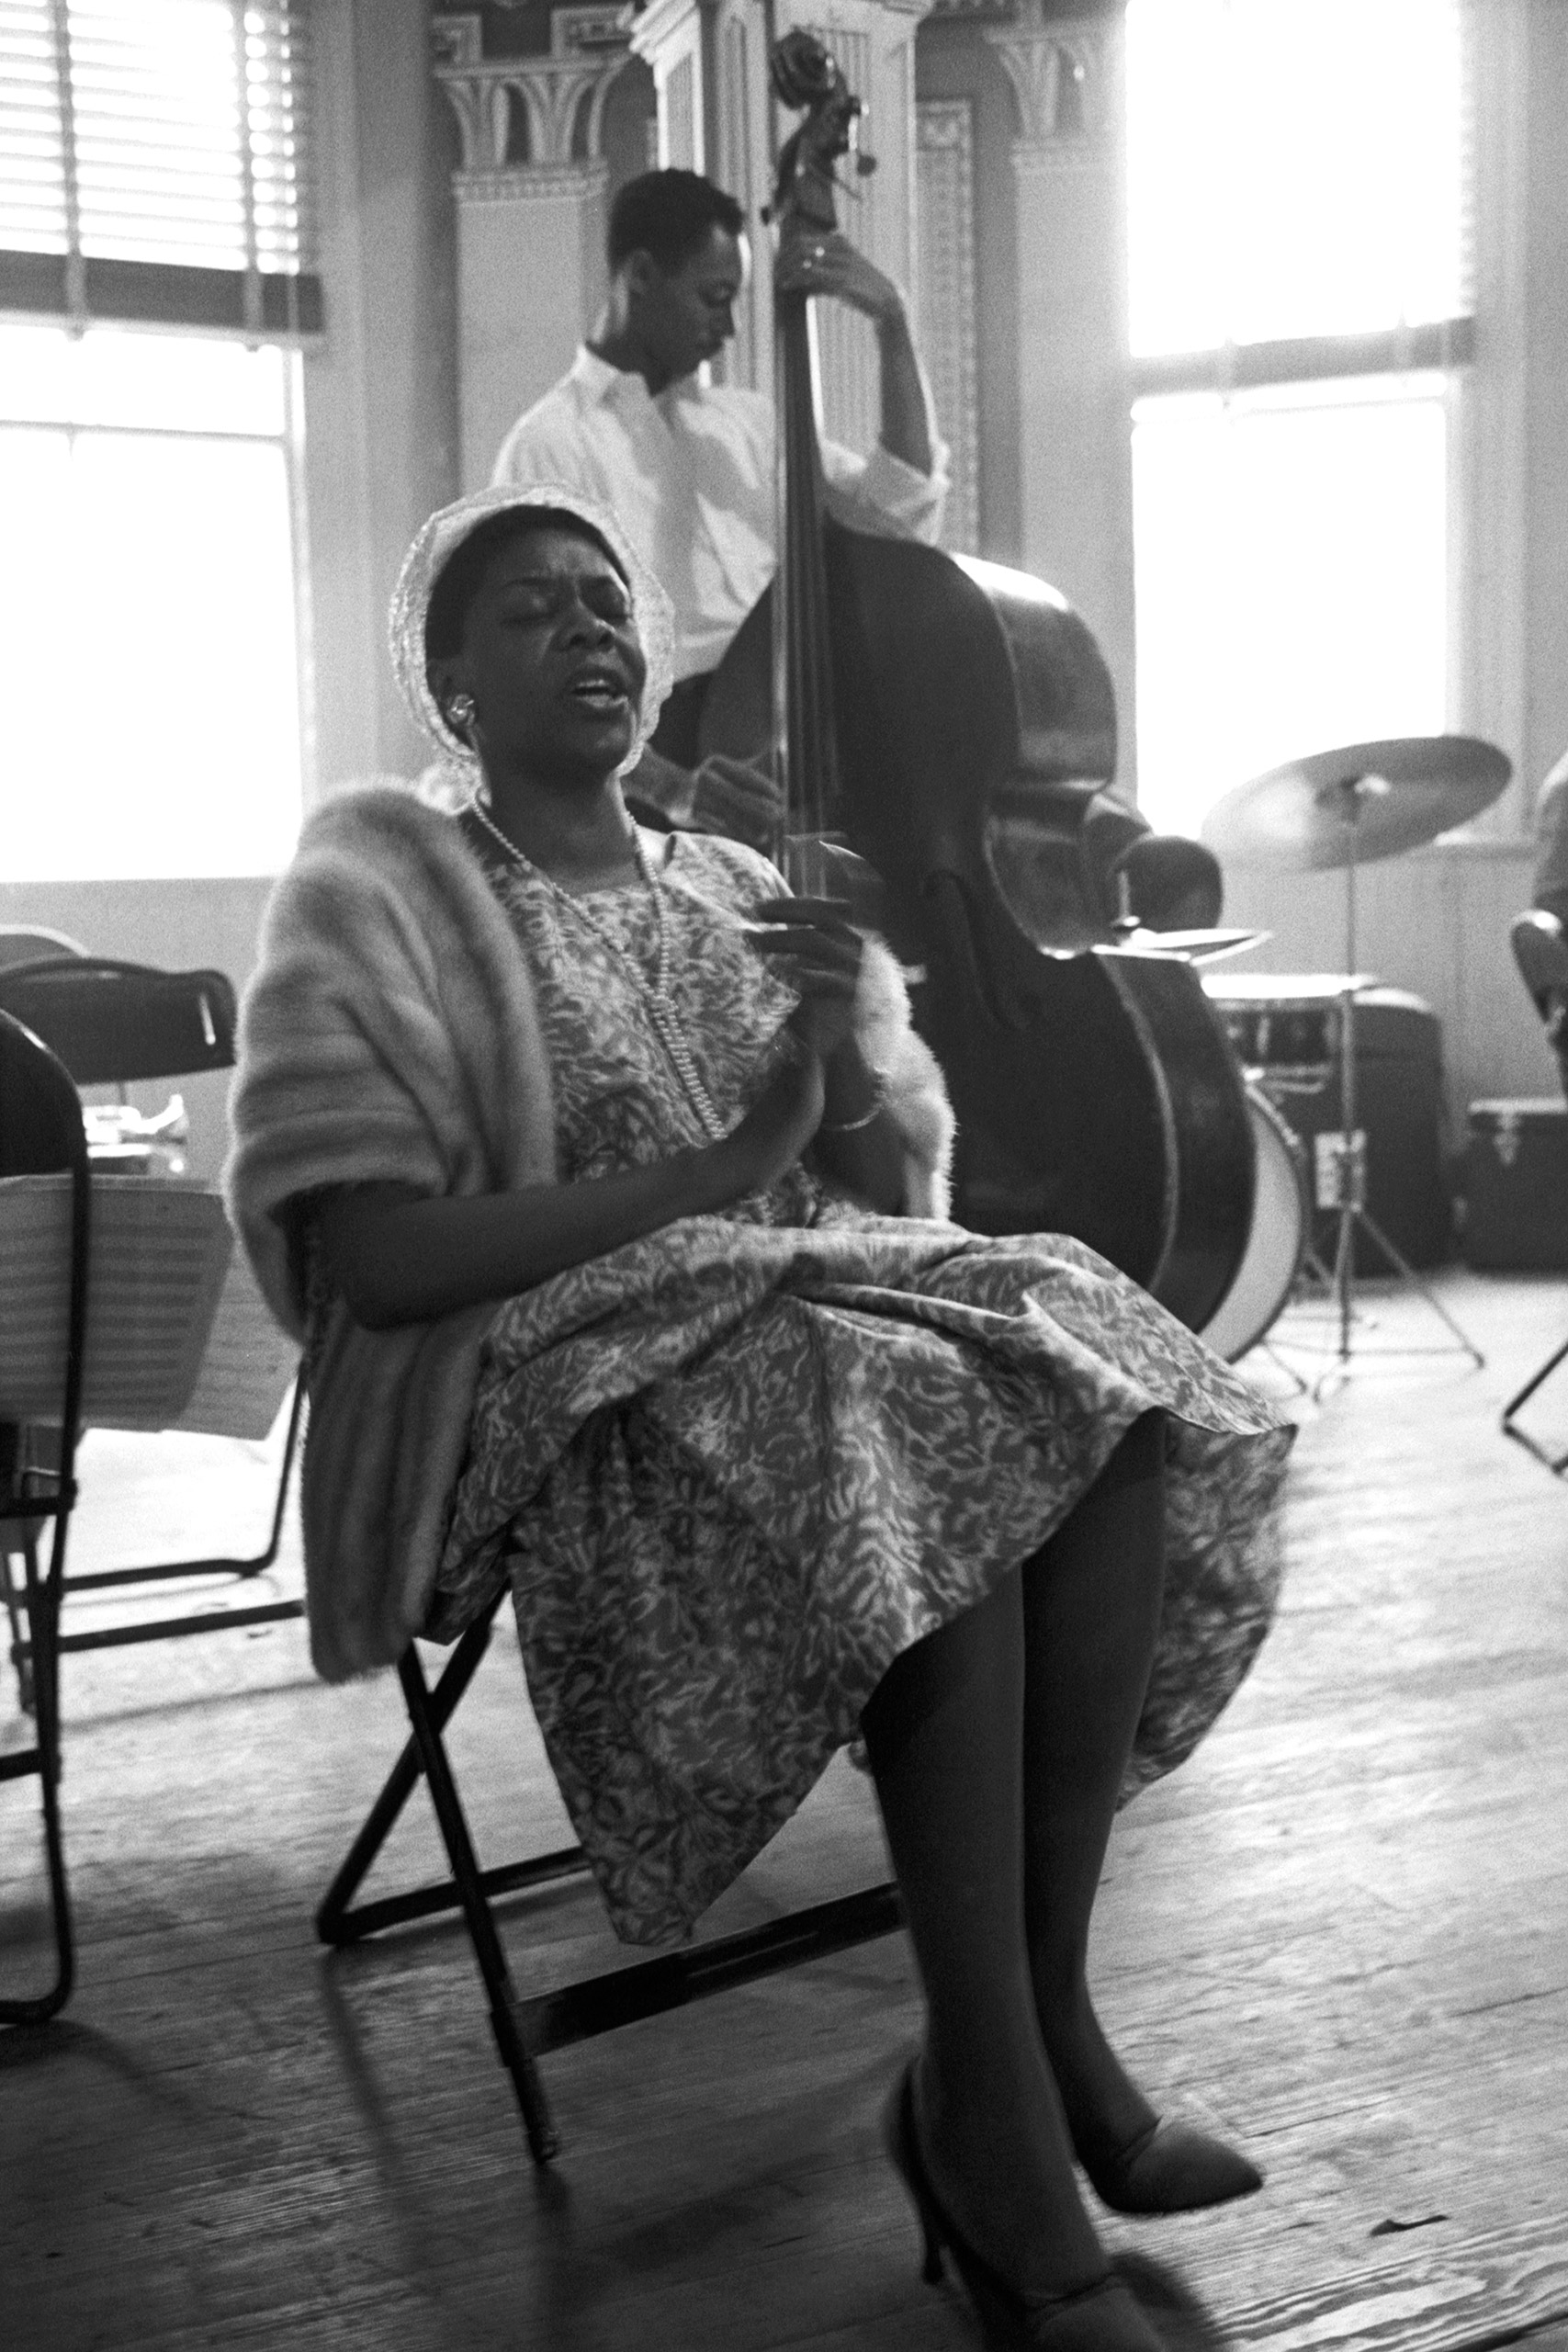 American singer and pianist Dinah Washington singing at a rehearsal during Newport Jazz Festival, Rhode Island, 1958.